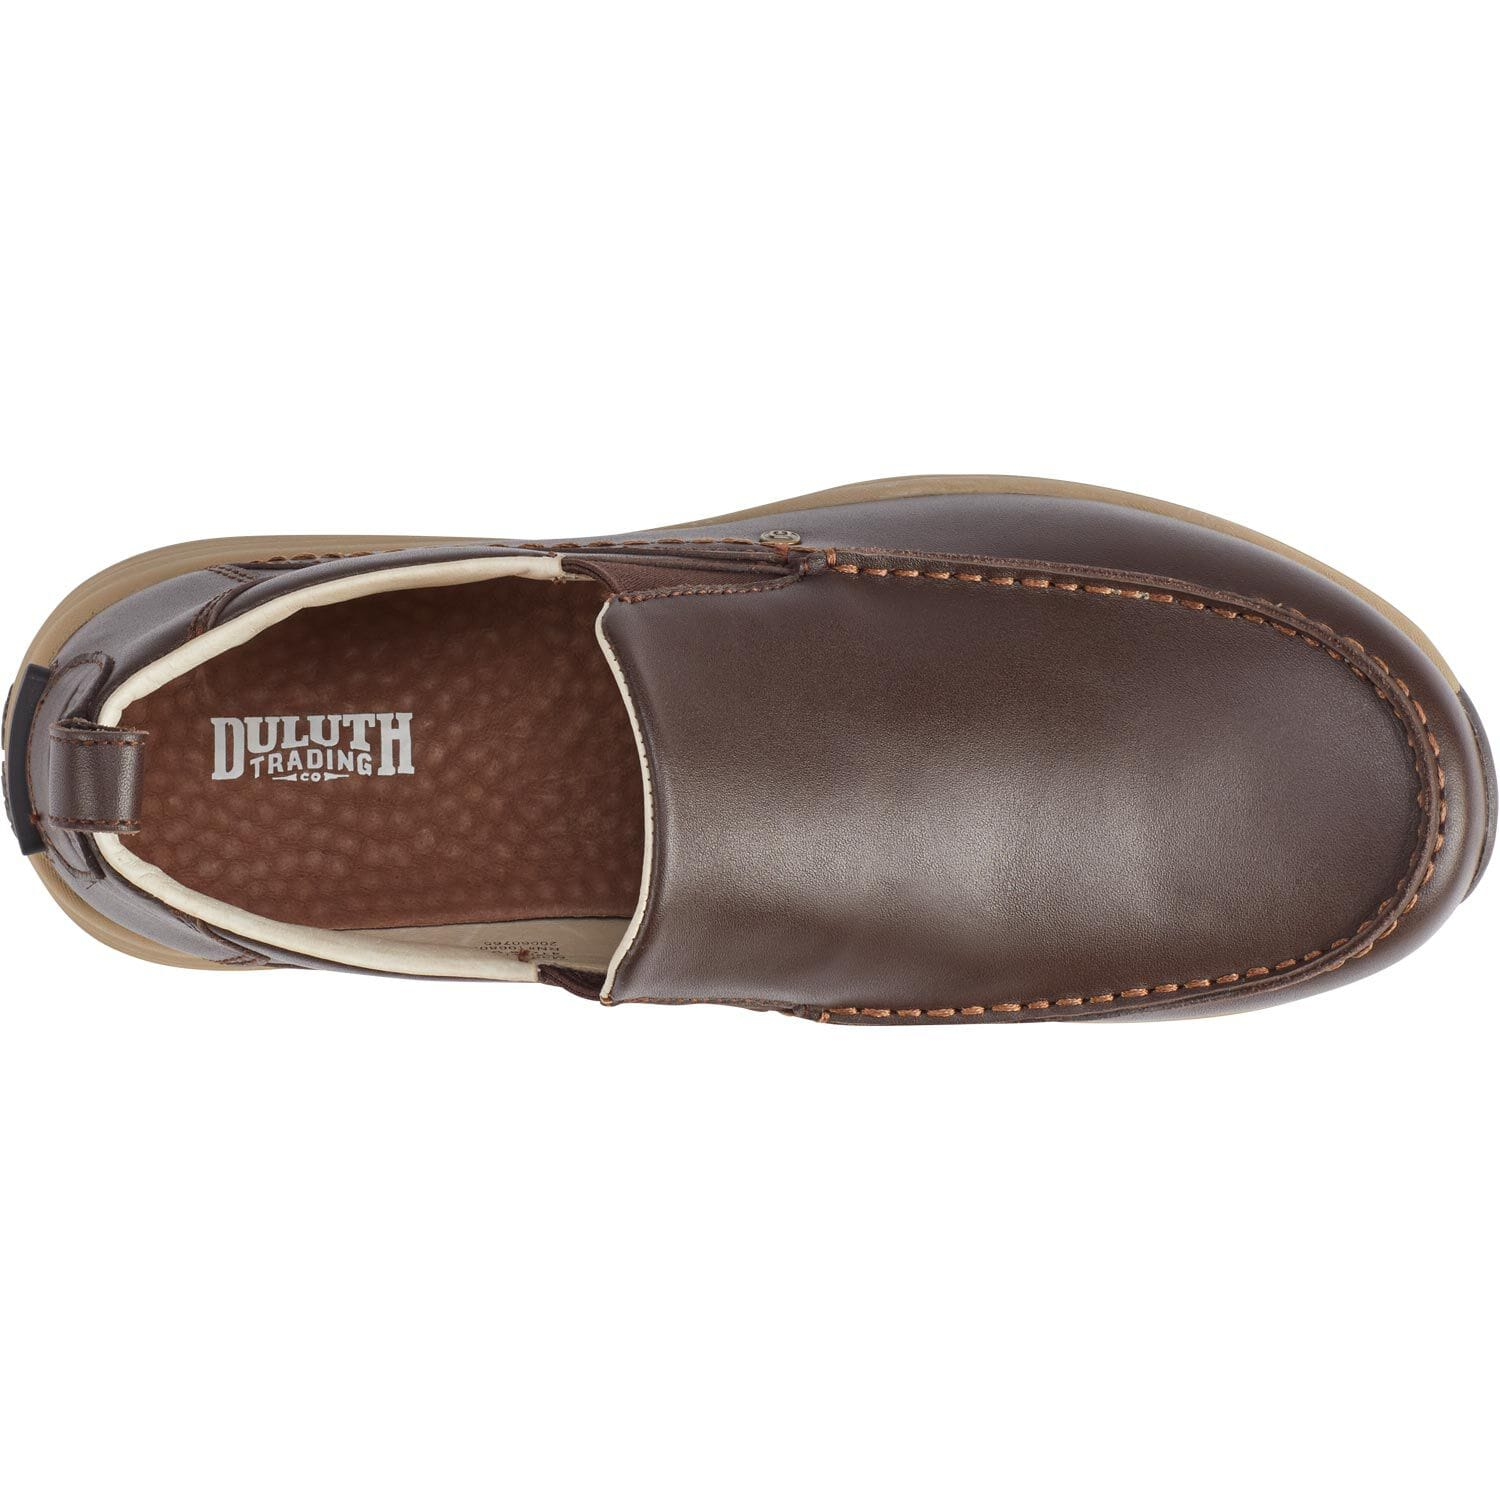 Tower Hill Slip-On Shoes   Duluth